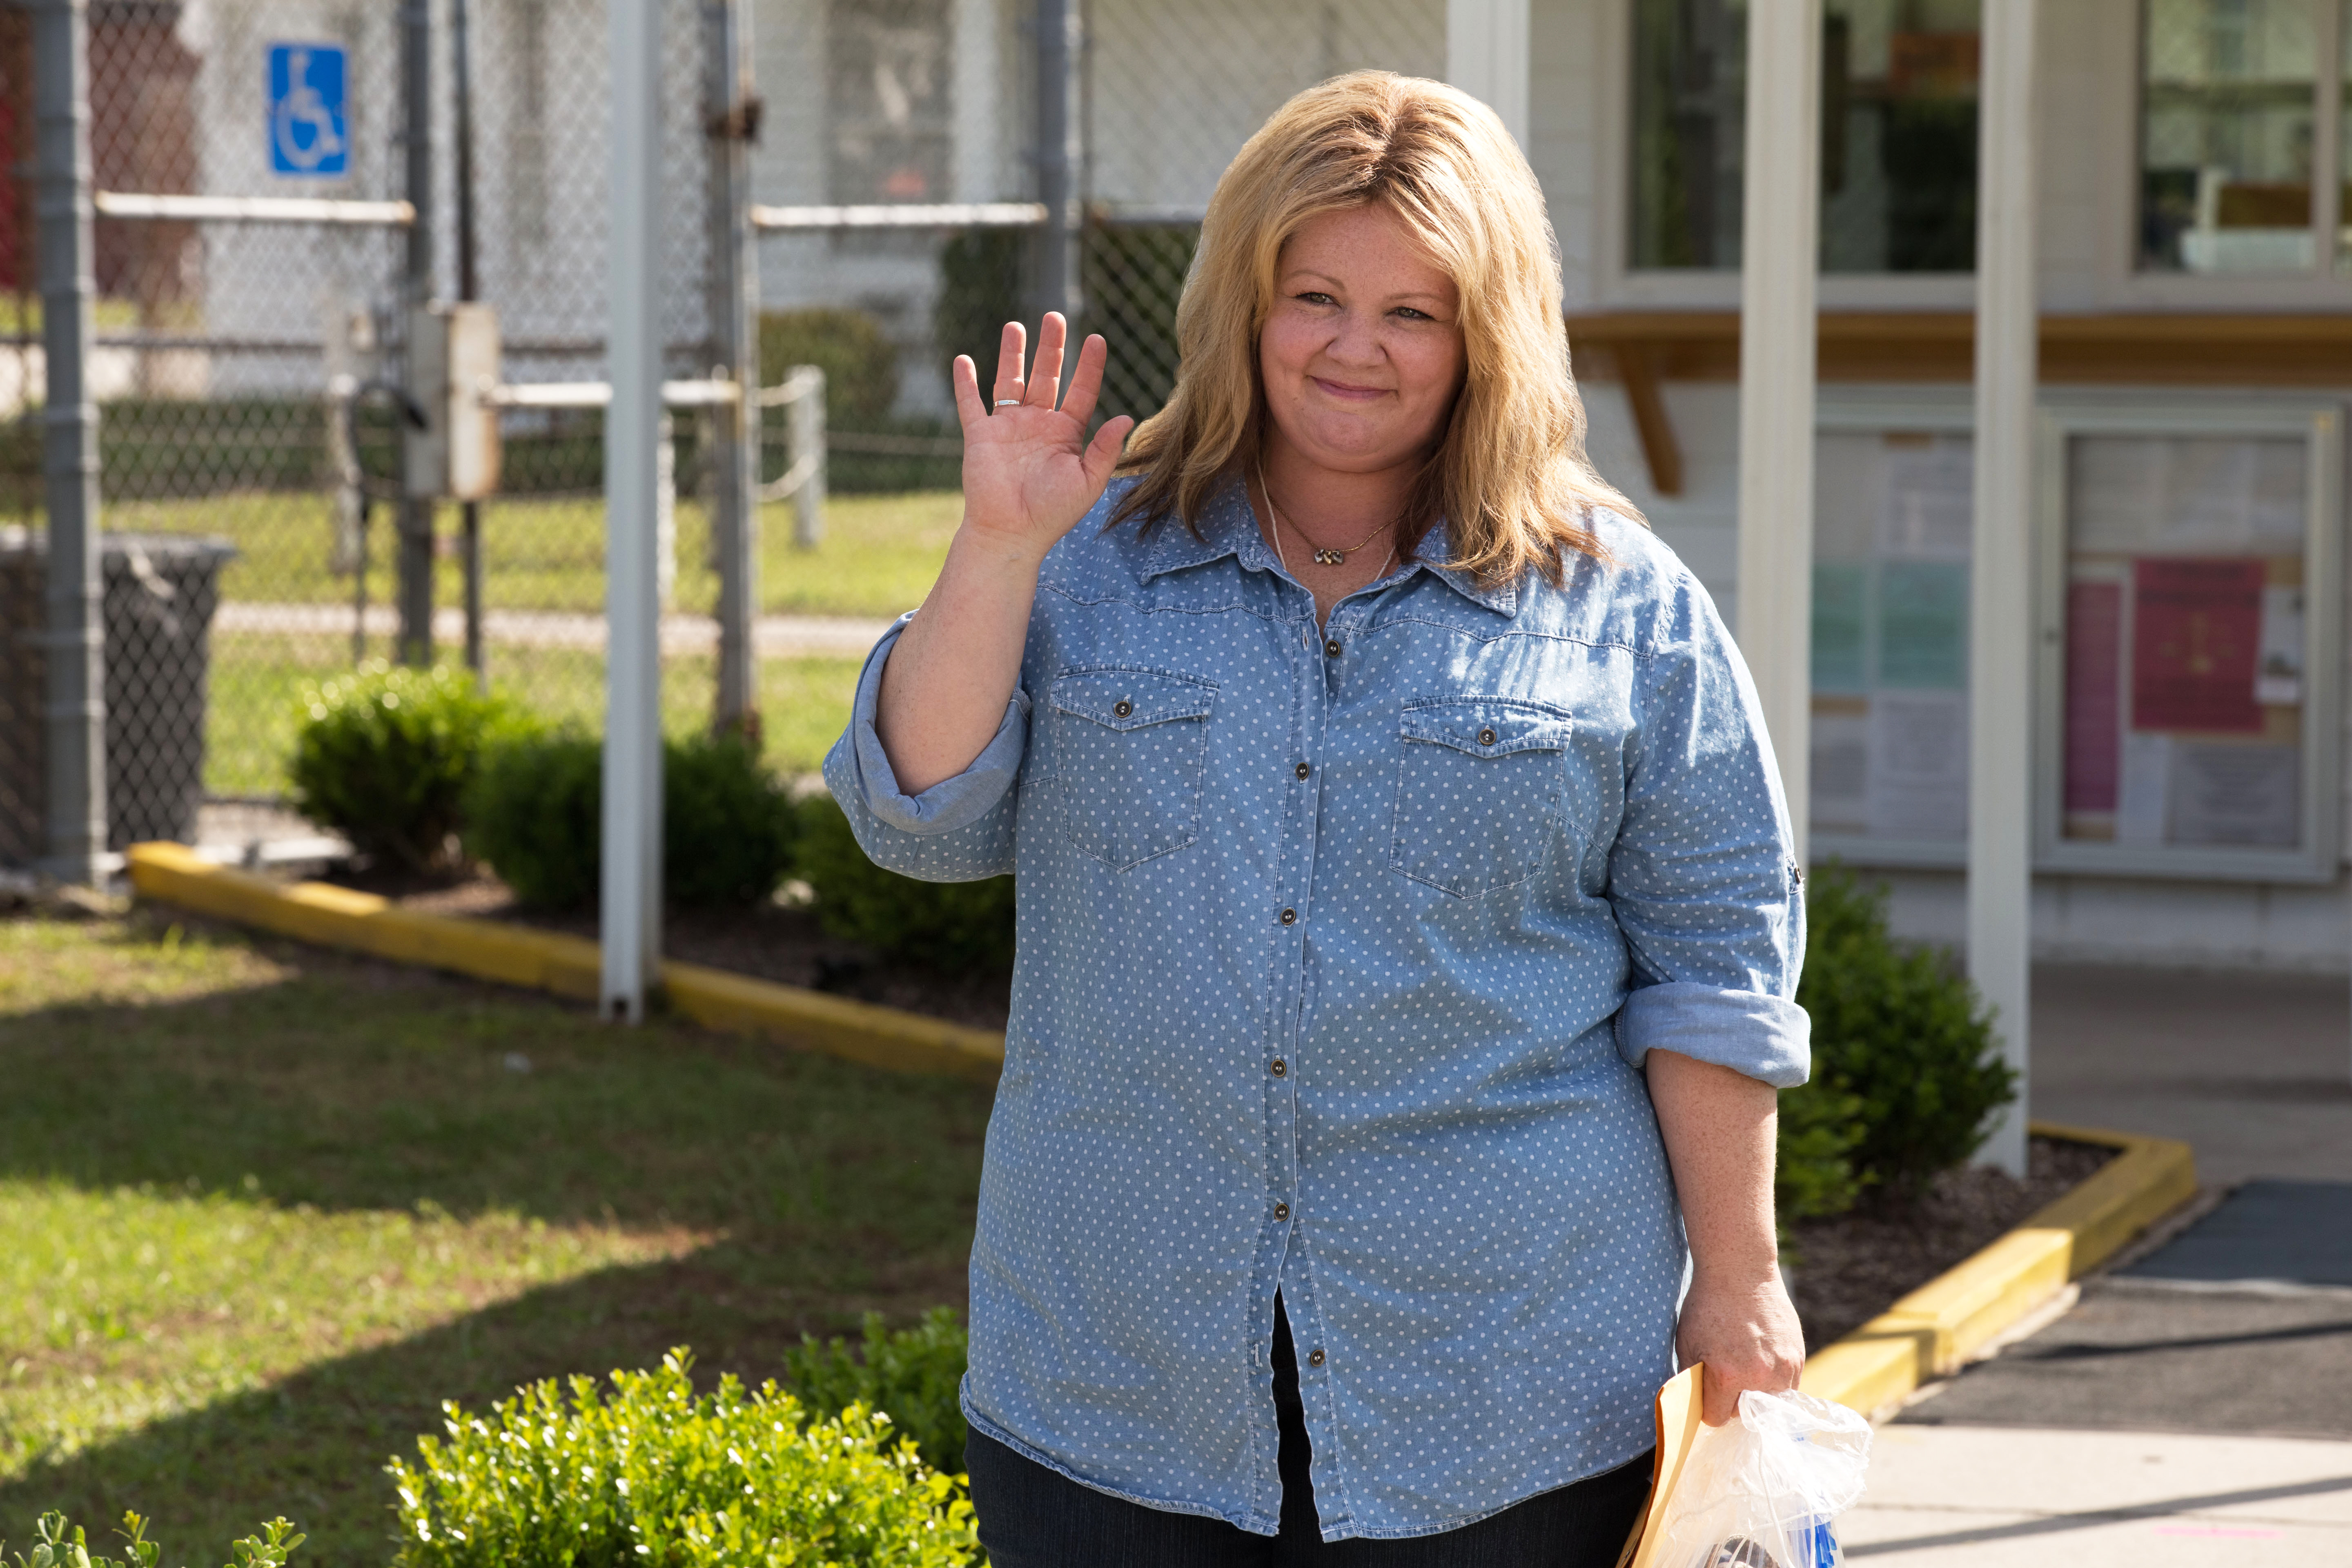 Melissa McCarthy as Tammy Banks in Tammy, 2014.